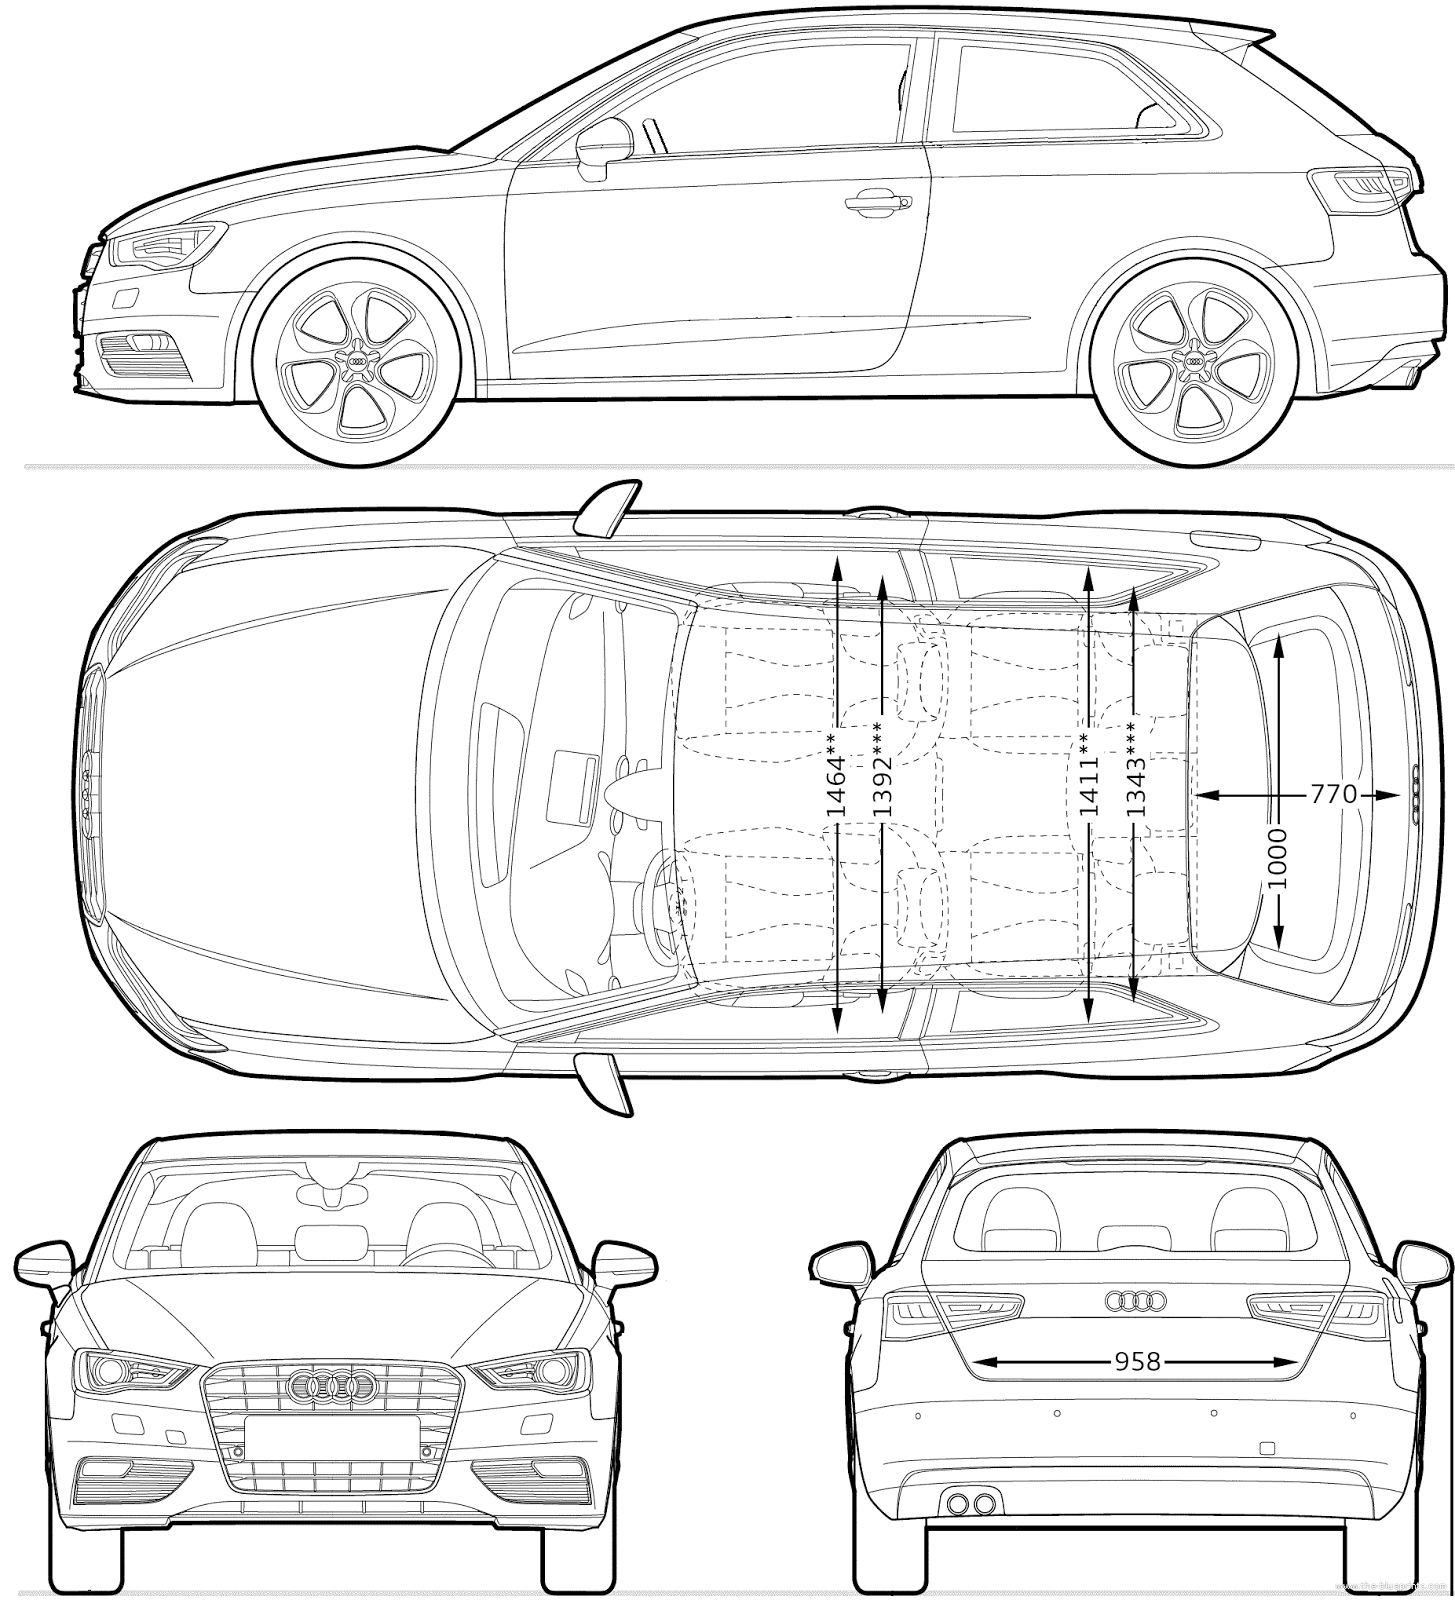 Audi a3 cool cars pinterest audi a3 cars and vw most loved car blueprints for modeling malvernweather Image collections